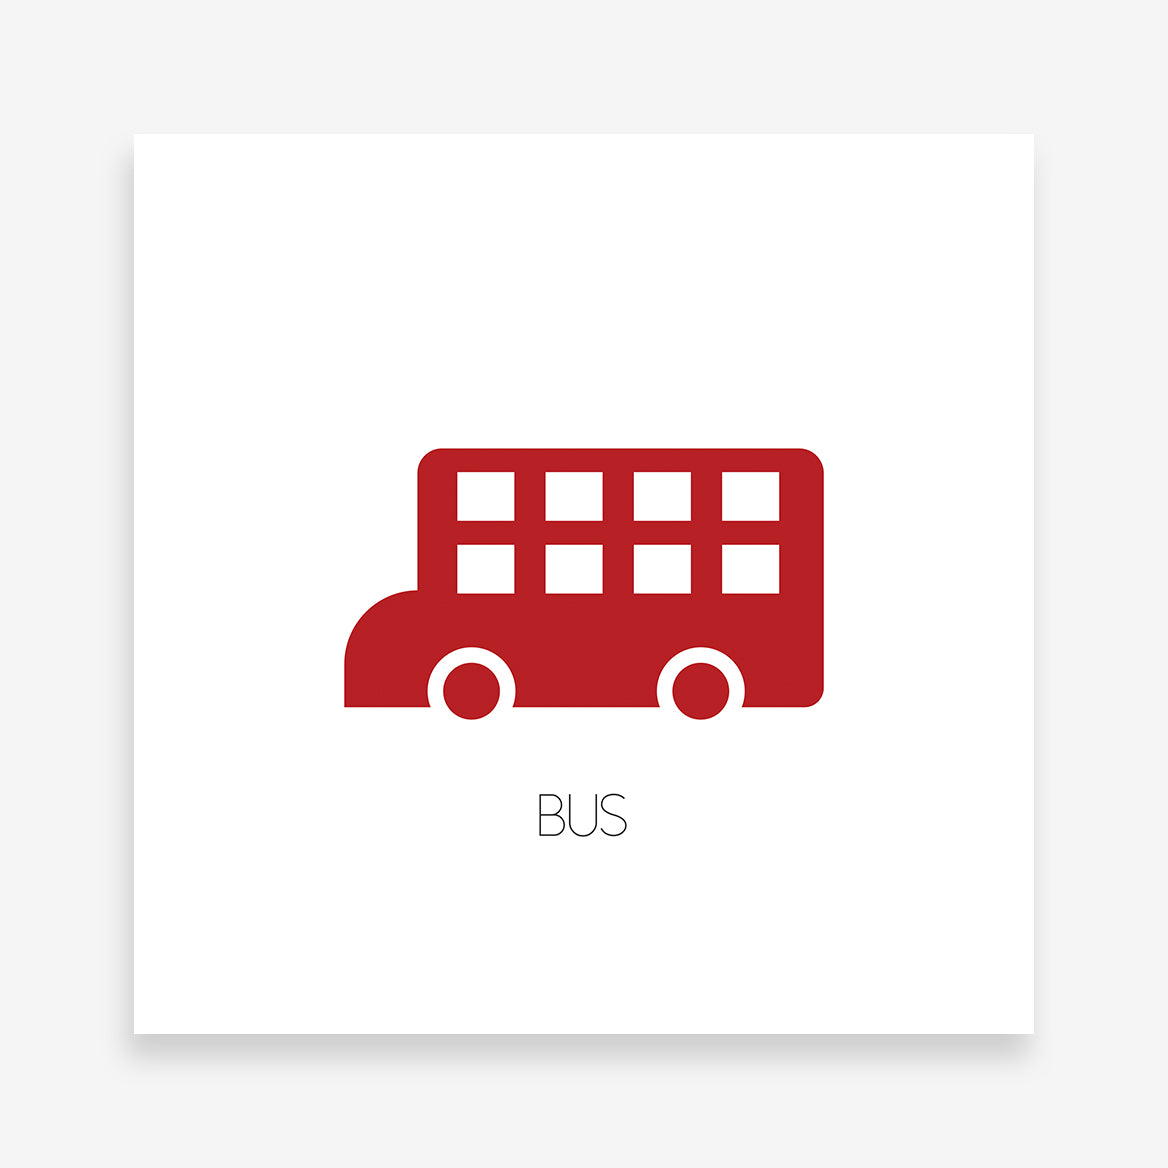 Poster print with double deck red bus and text on white background.